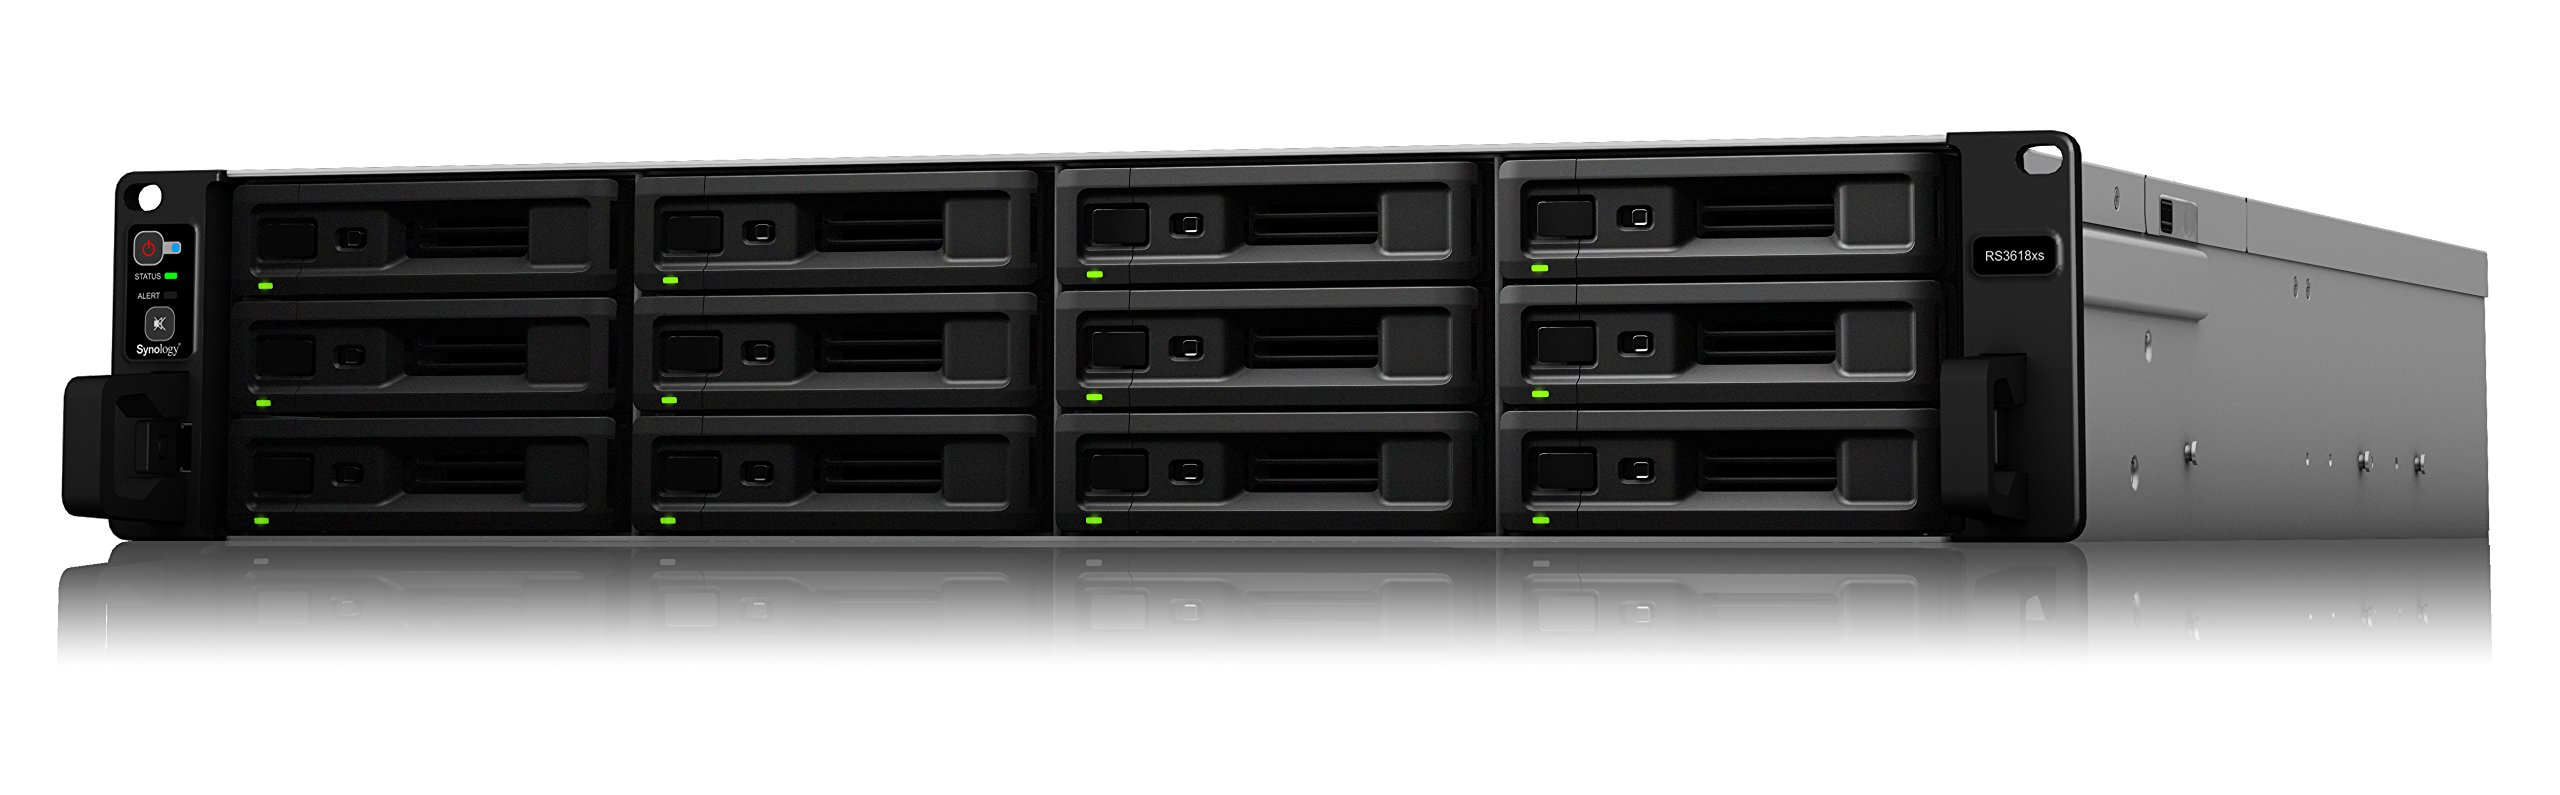 Synology 12bay NAS RackStation RS3618xs (Diskless), RS3618xs by Synology